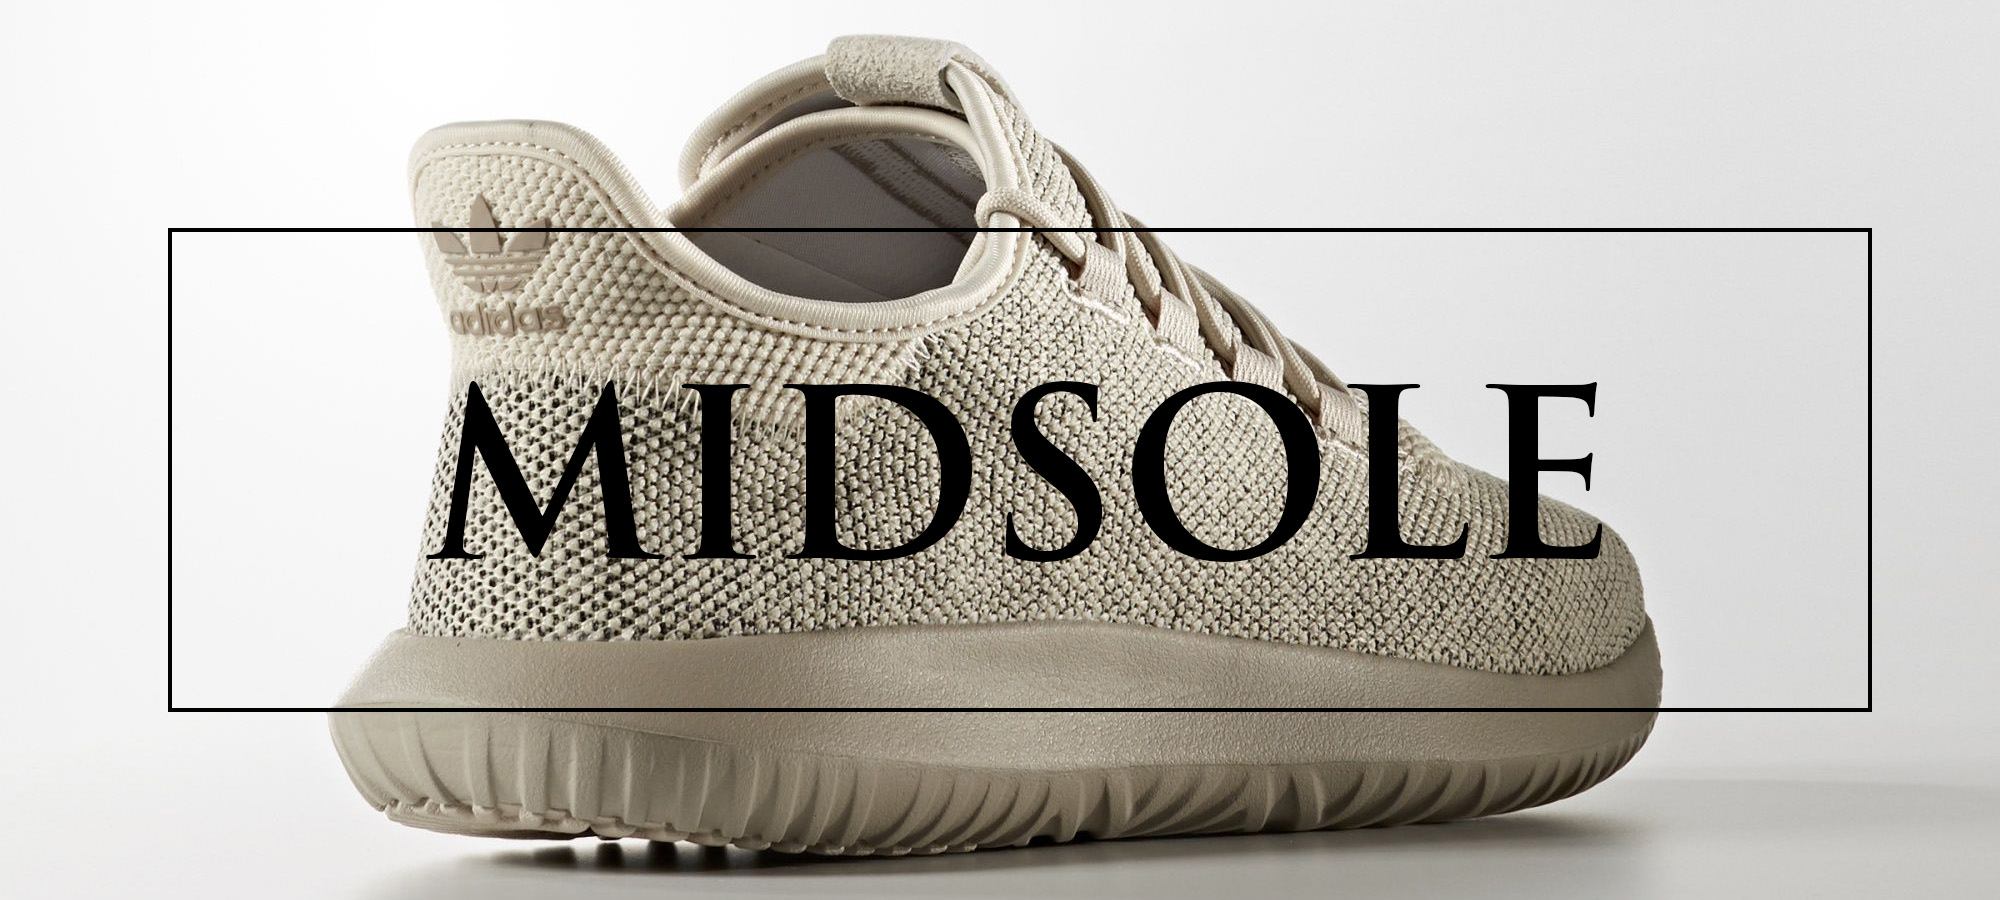 8d620ddf449d adidas Tubular Shadow Knit - Poor Man s Yeezy